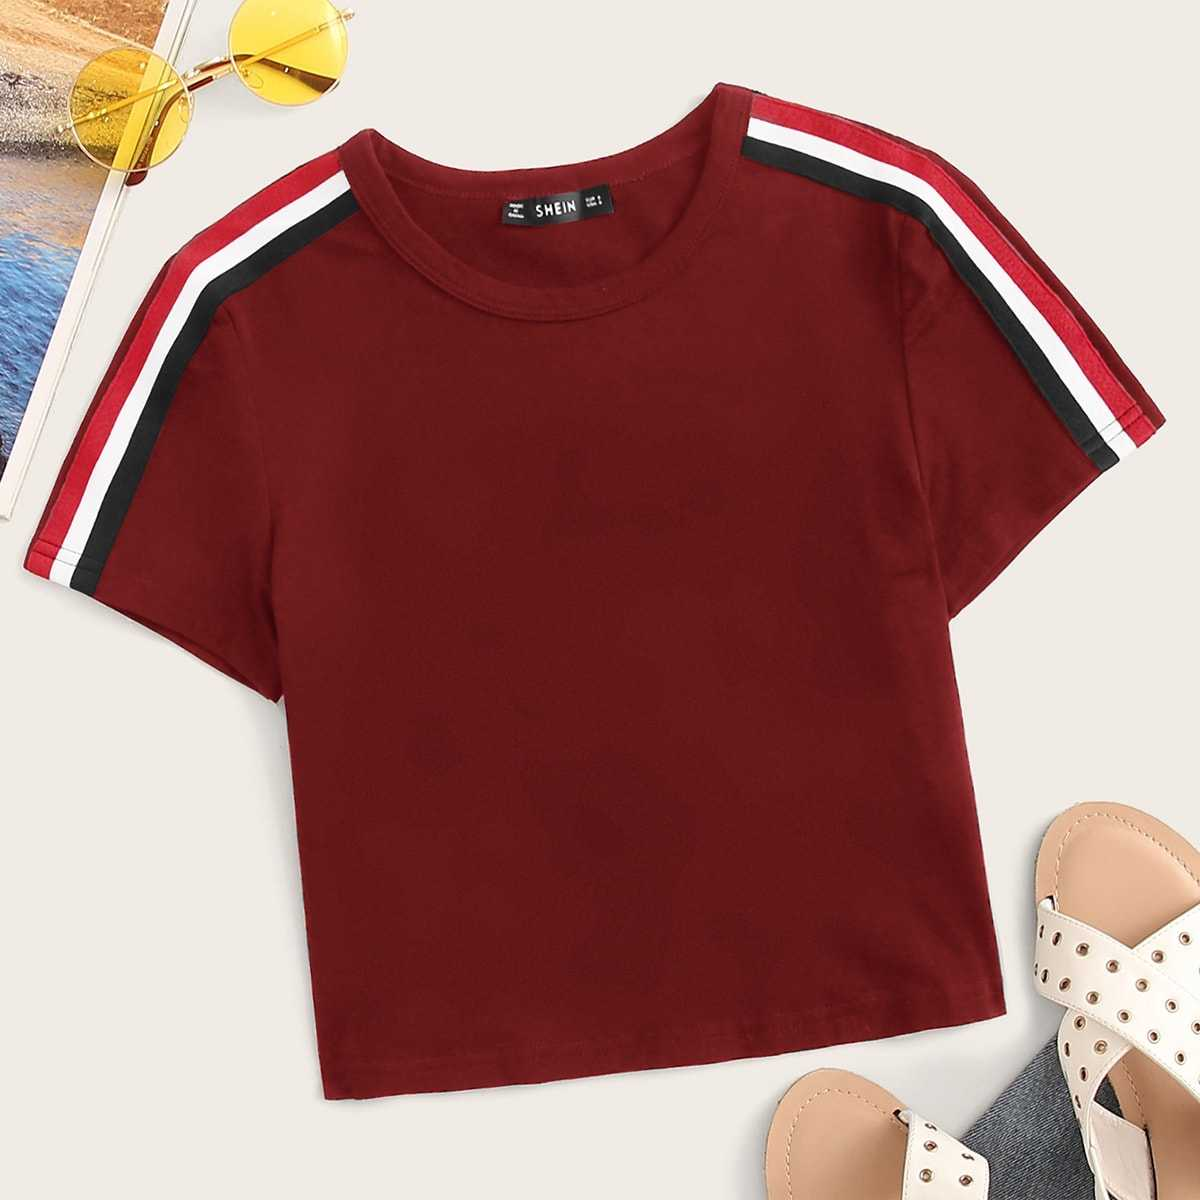 Striped Tape Detail Short Sleeve Top in Burgundy by ROMWE on GOOFASH